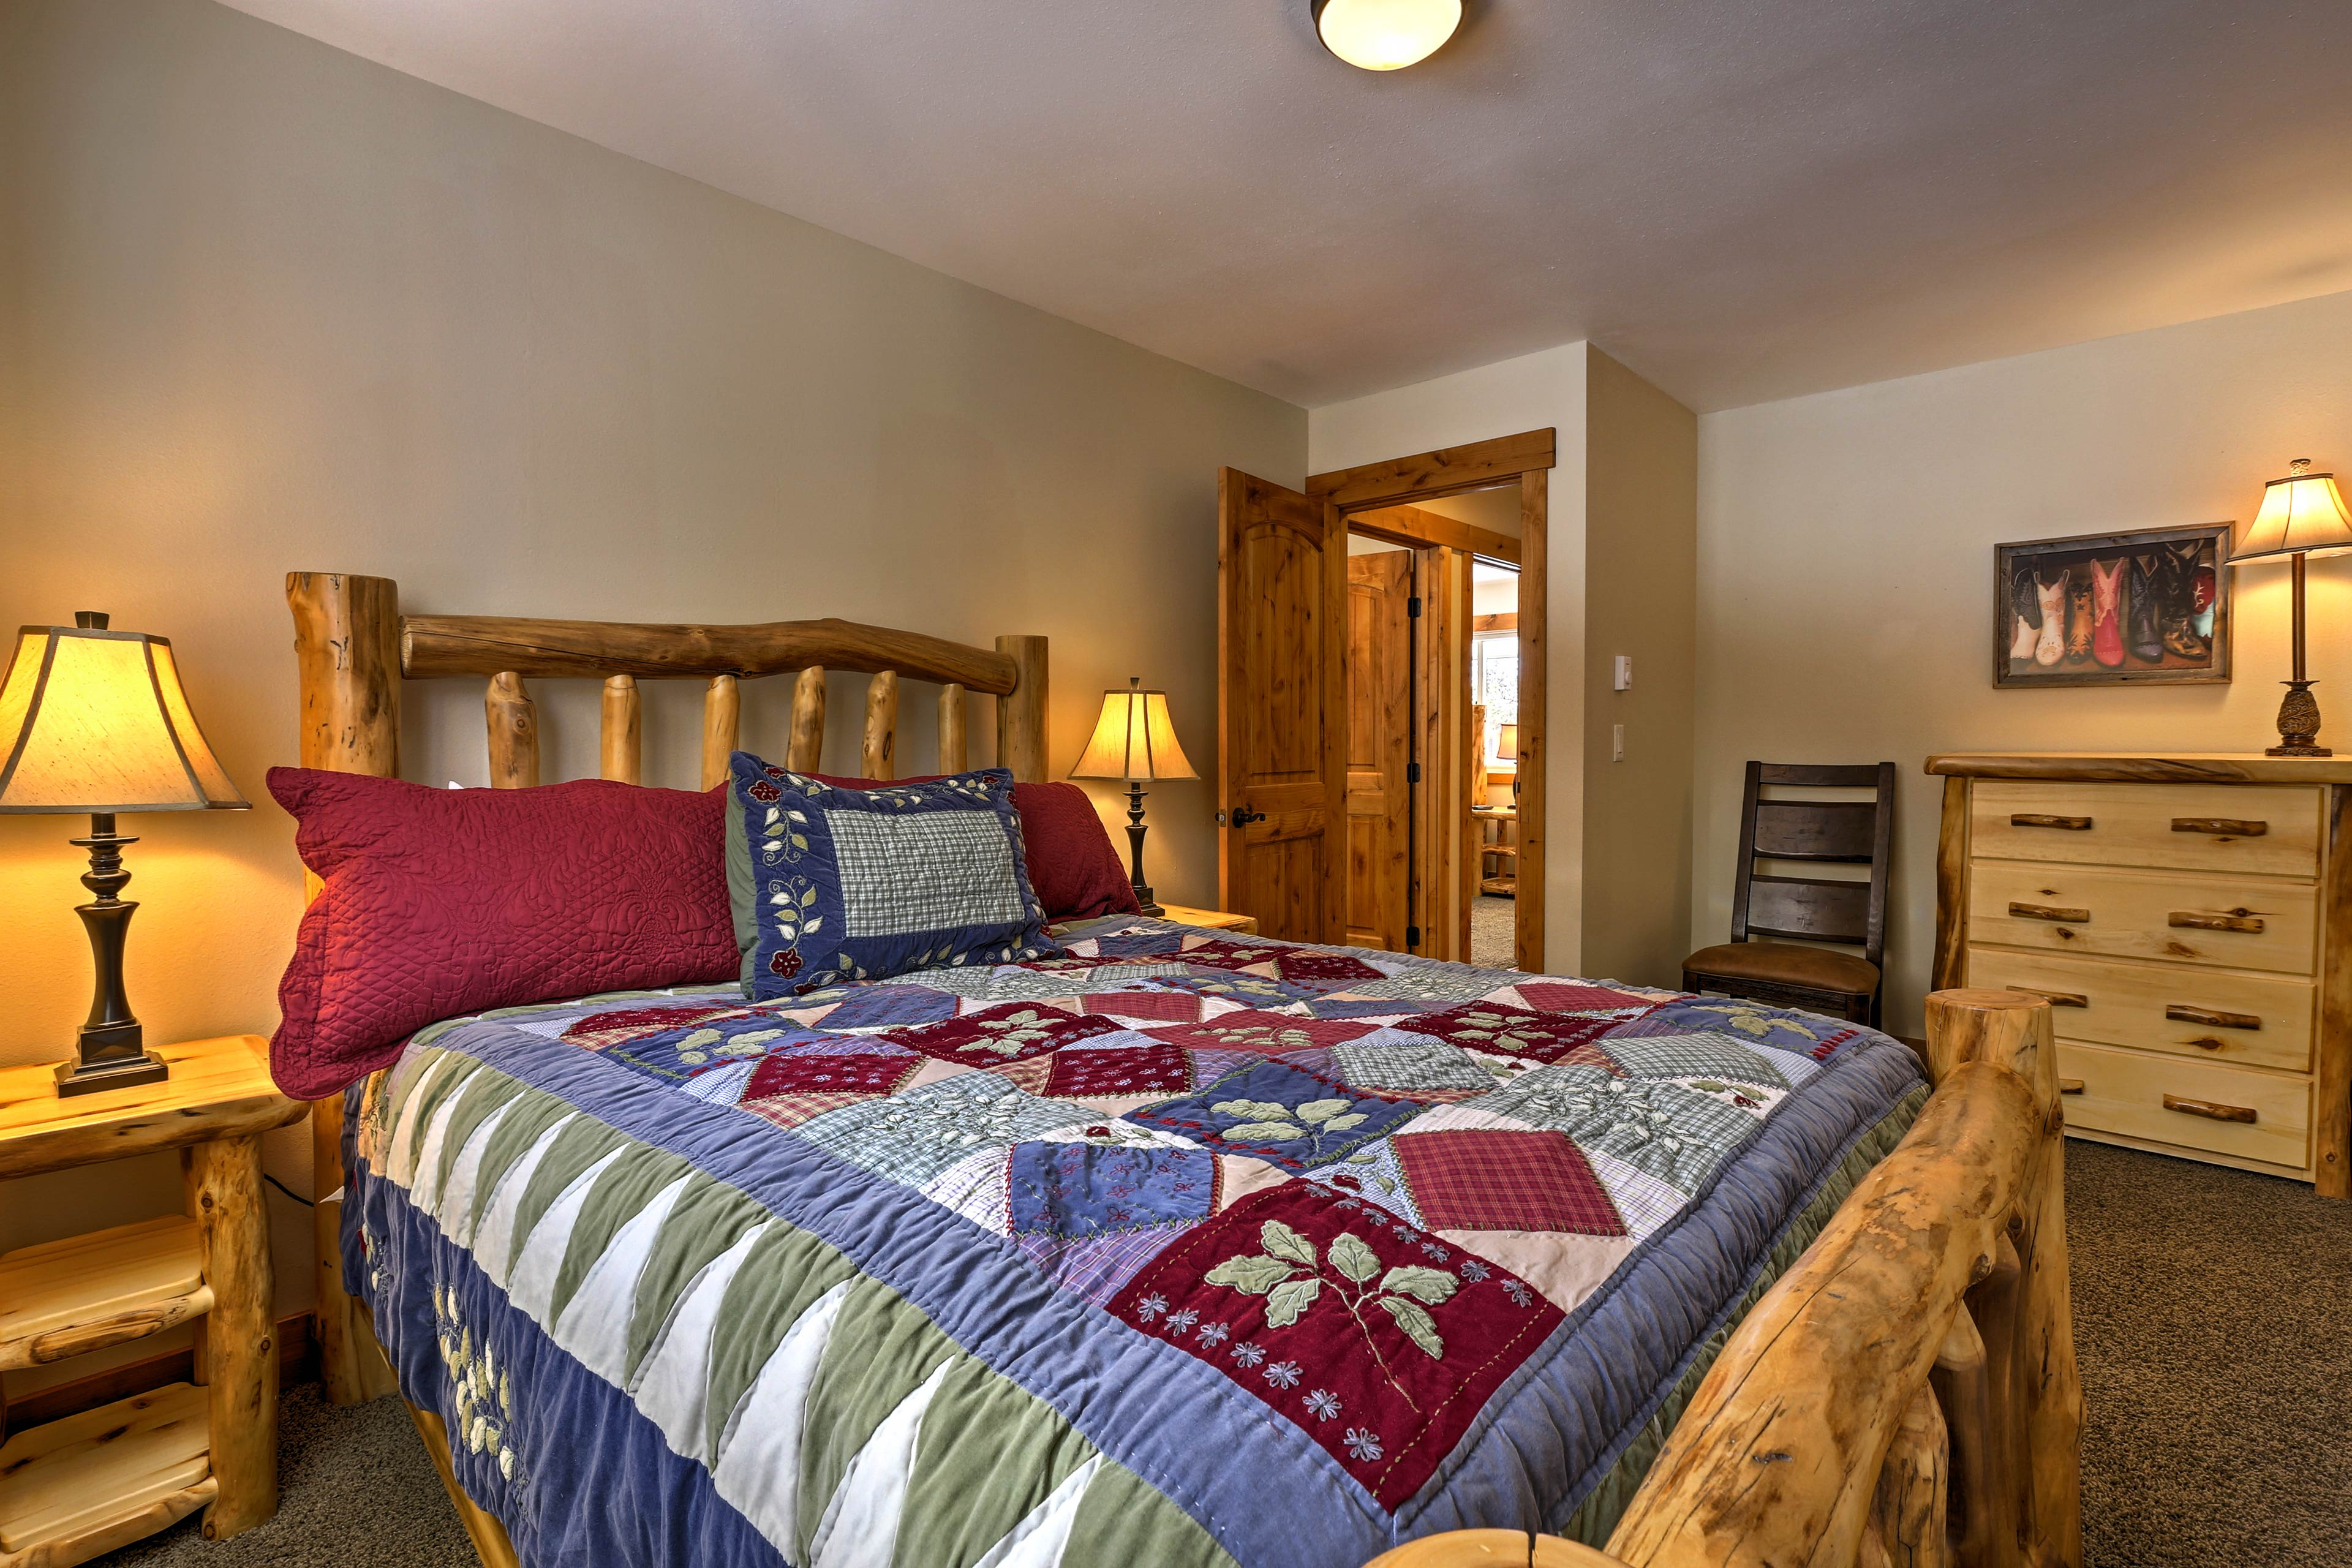 Enjoy a restful night on the king bed in the master bedroom.